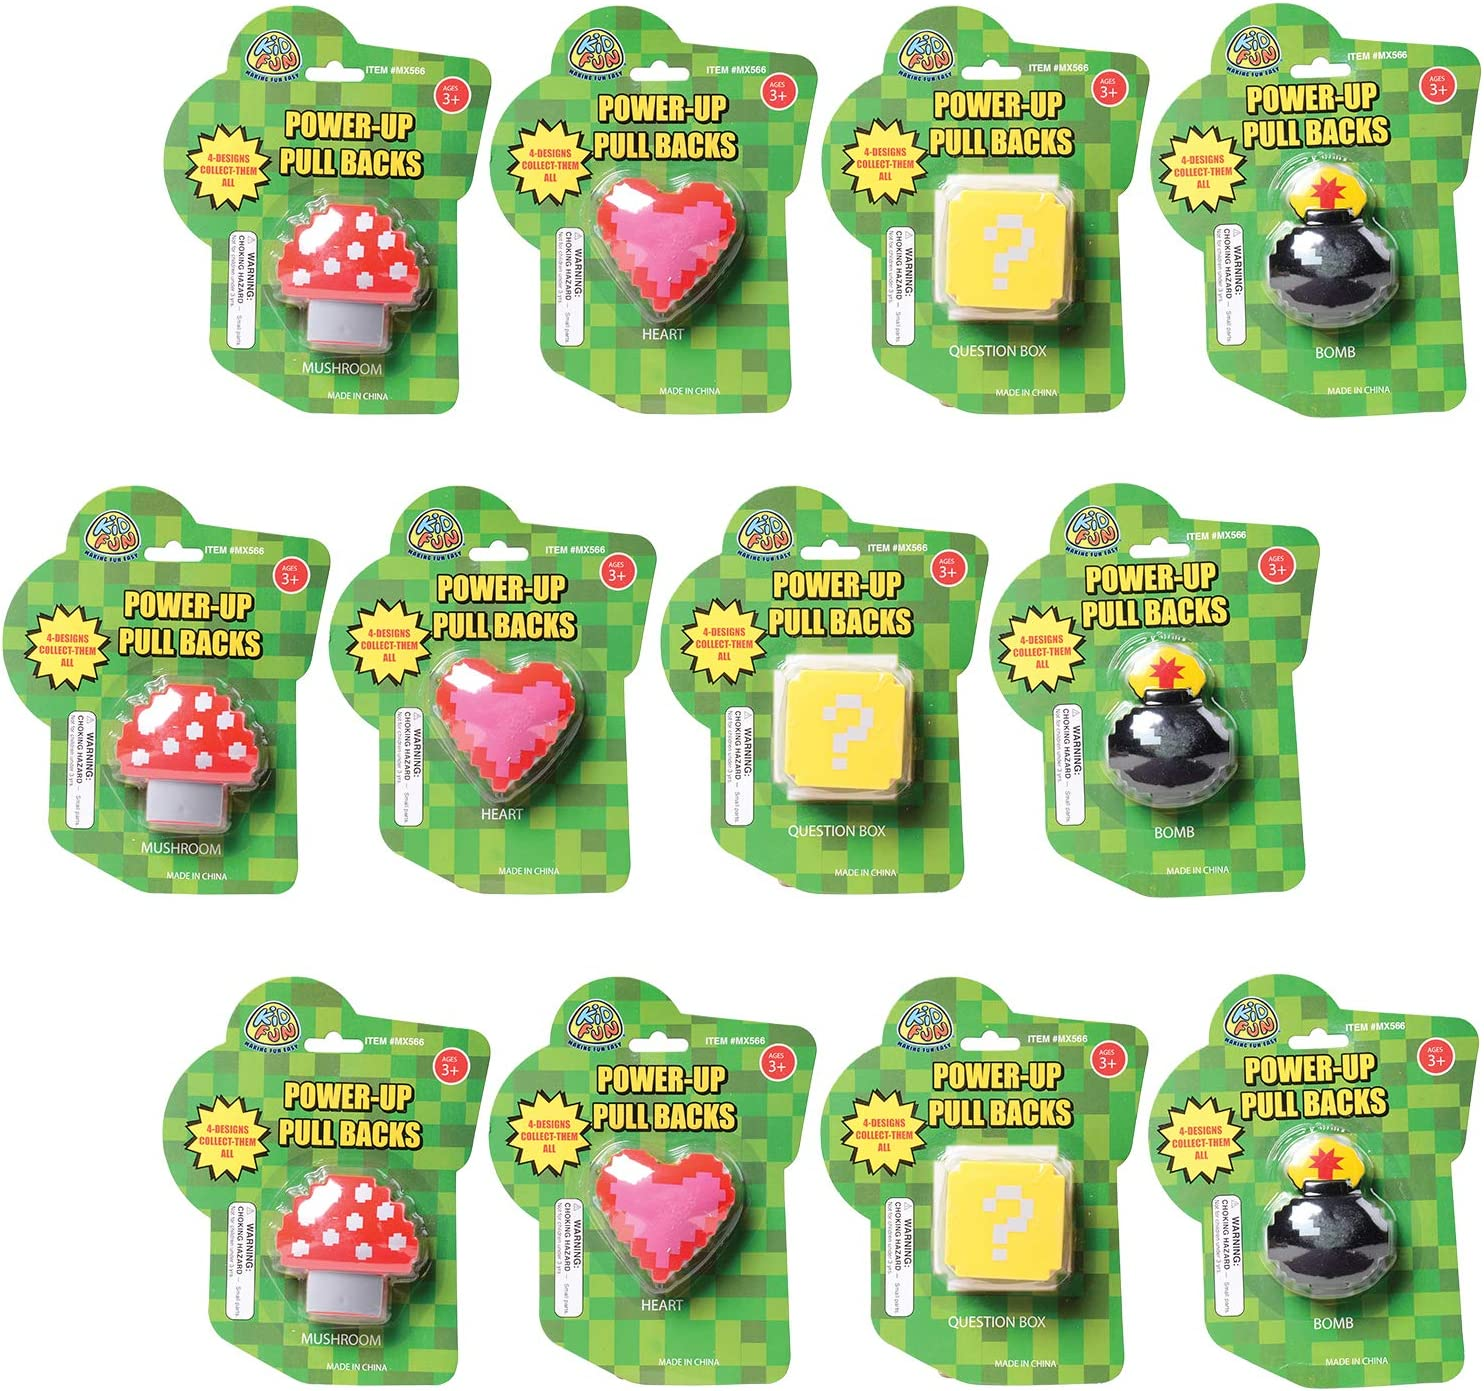 Toy Power Up Pull Backs Kids Birthday Party U.S Party Favors for Kids 12 Count Themed Toys Supplies